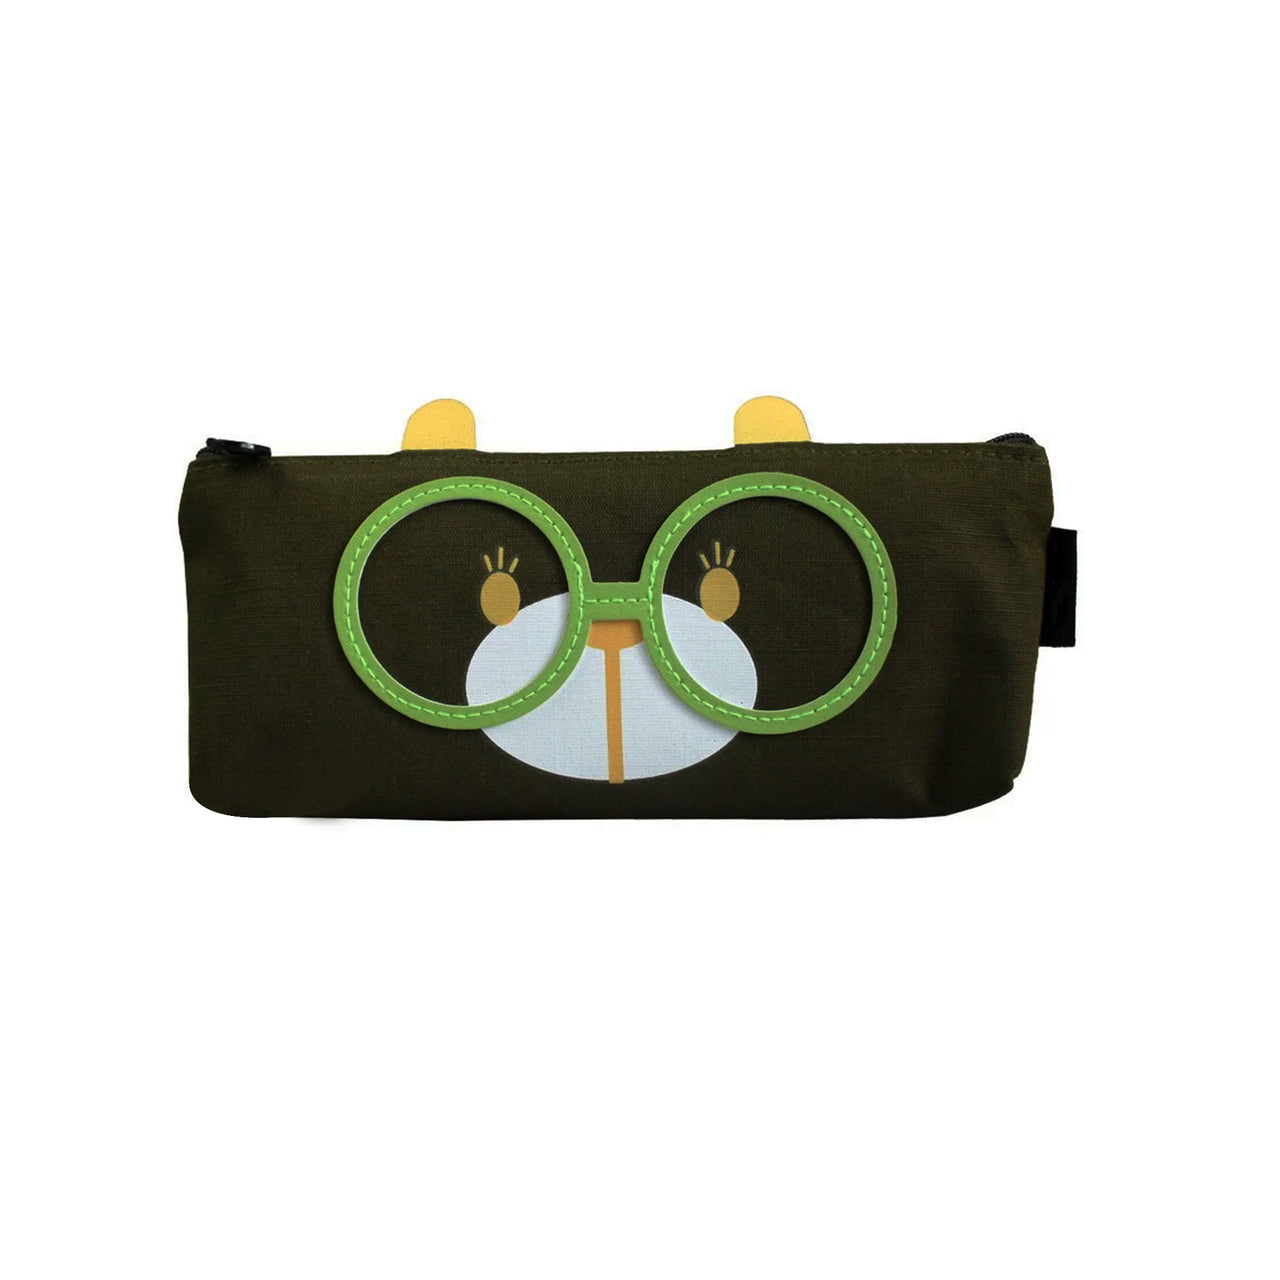 Glasses Fabric Pencil Case - Dark Green